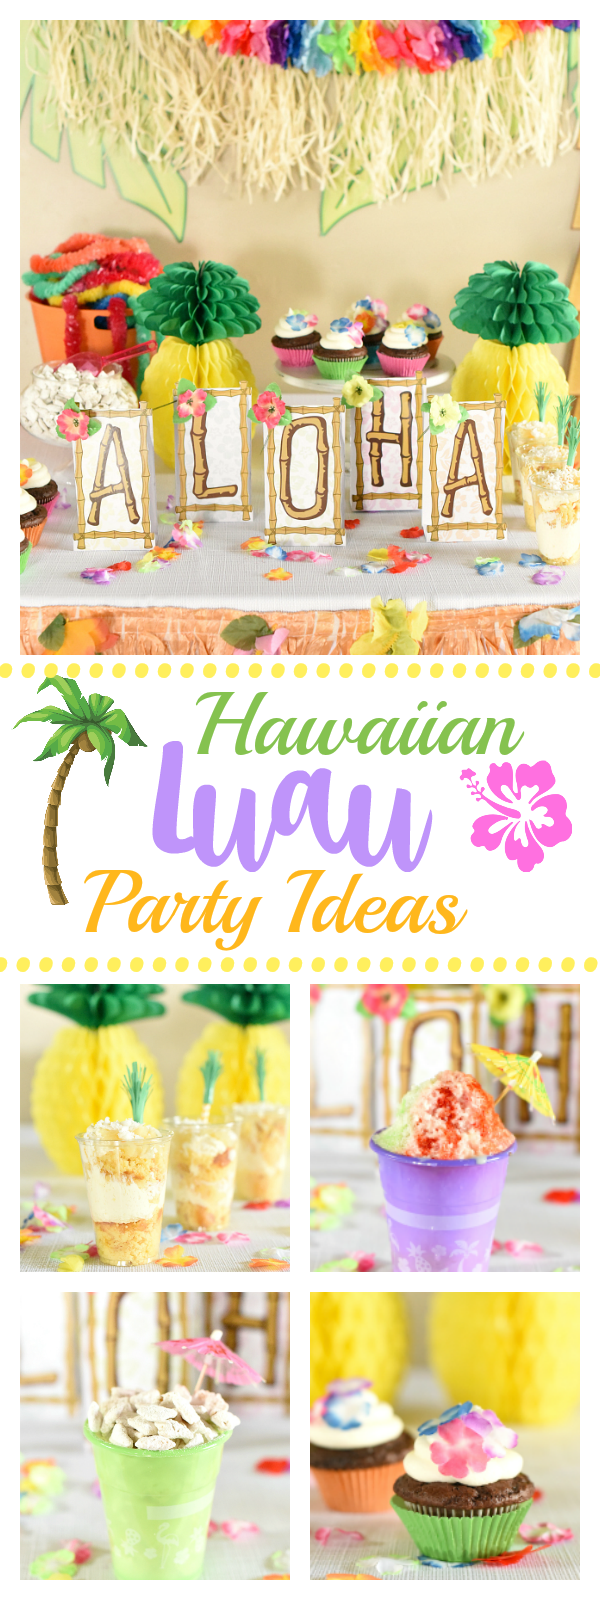 Hawaiian Luau Party Ideas Great To Throw The Funnest Themed From Food